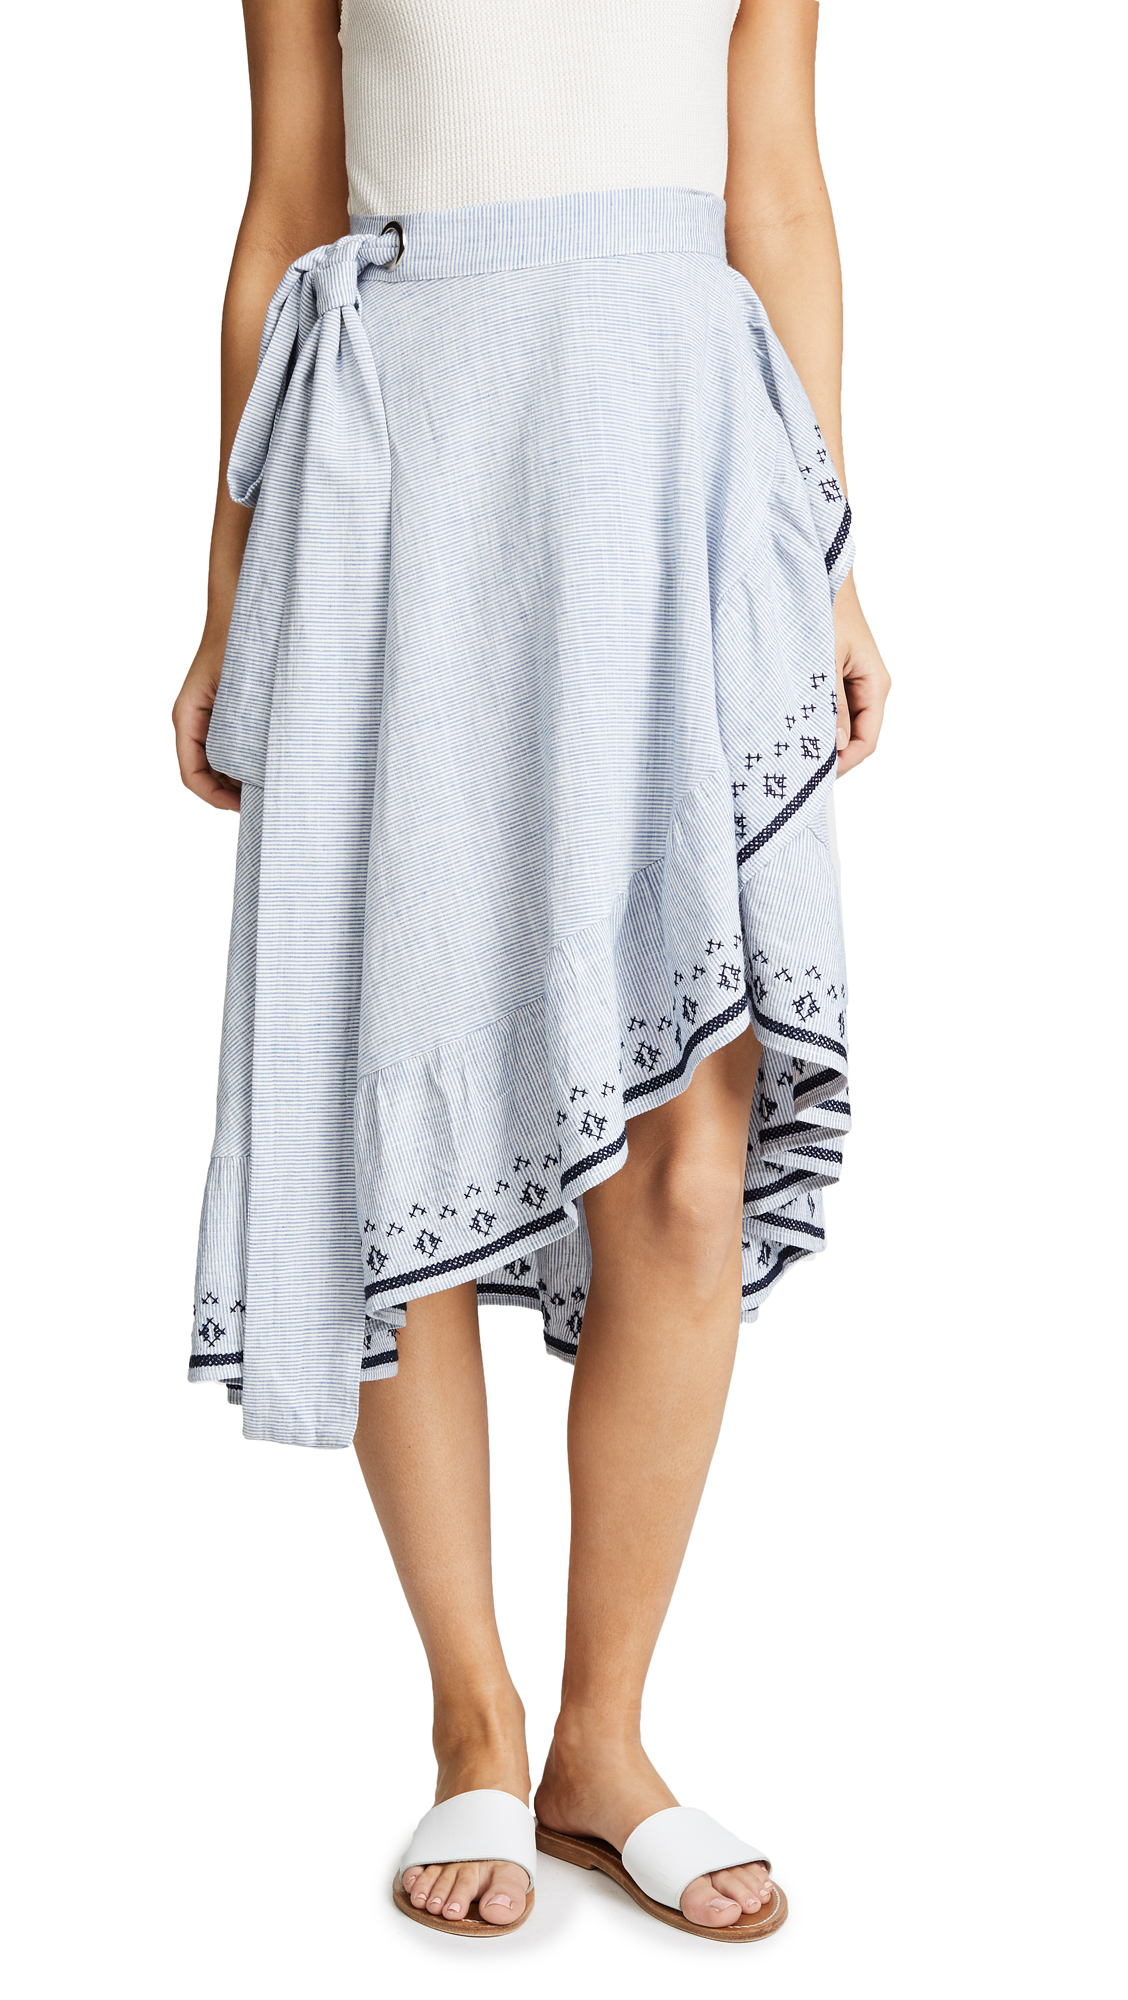 Suncoo Floriane Skirt In Bleu